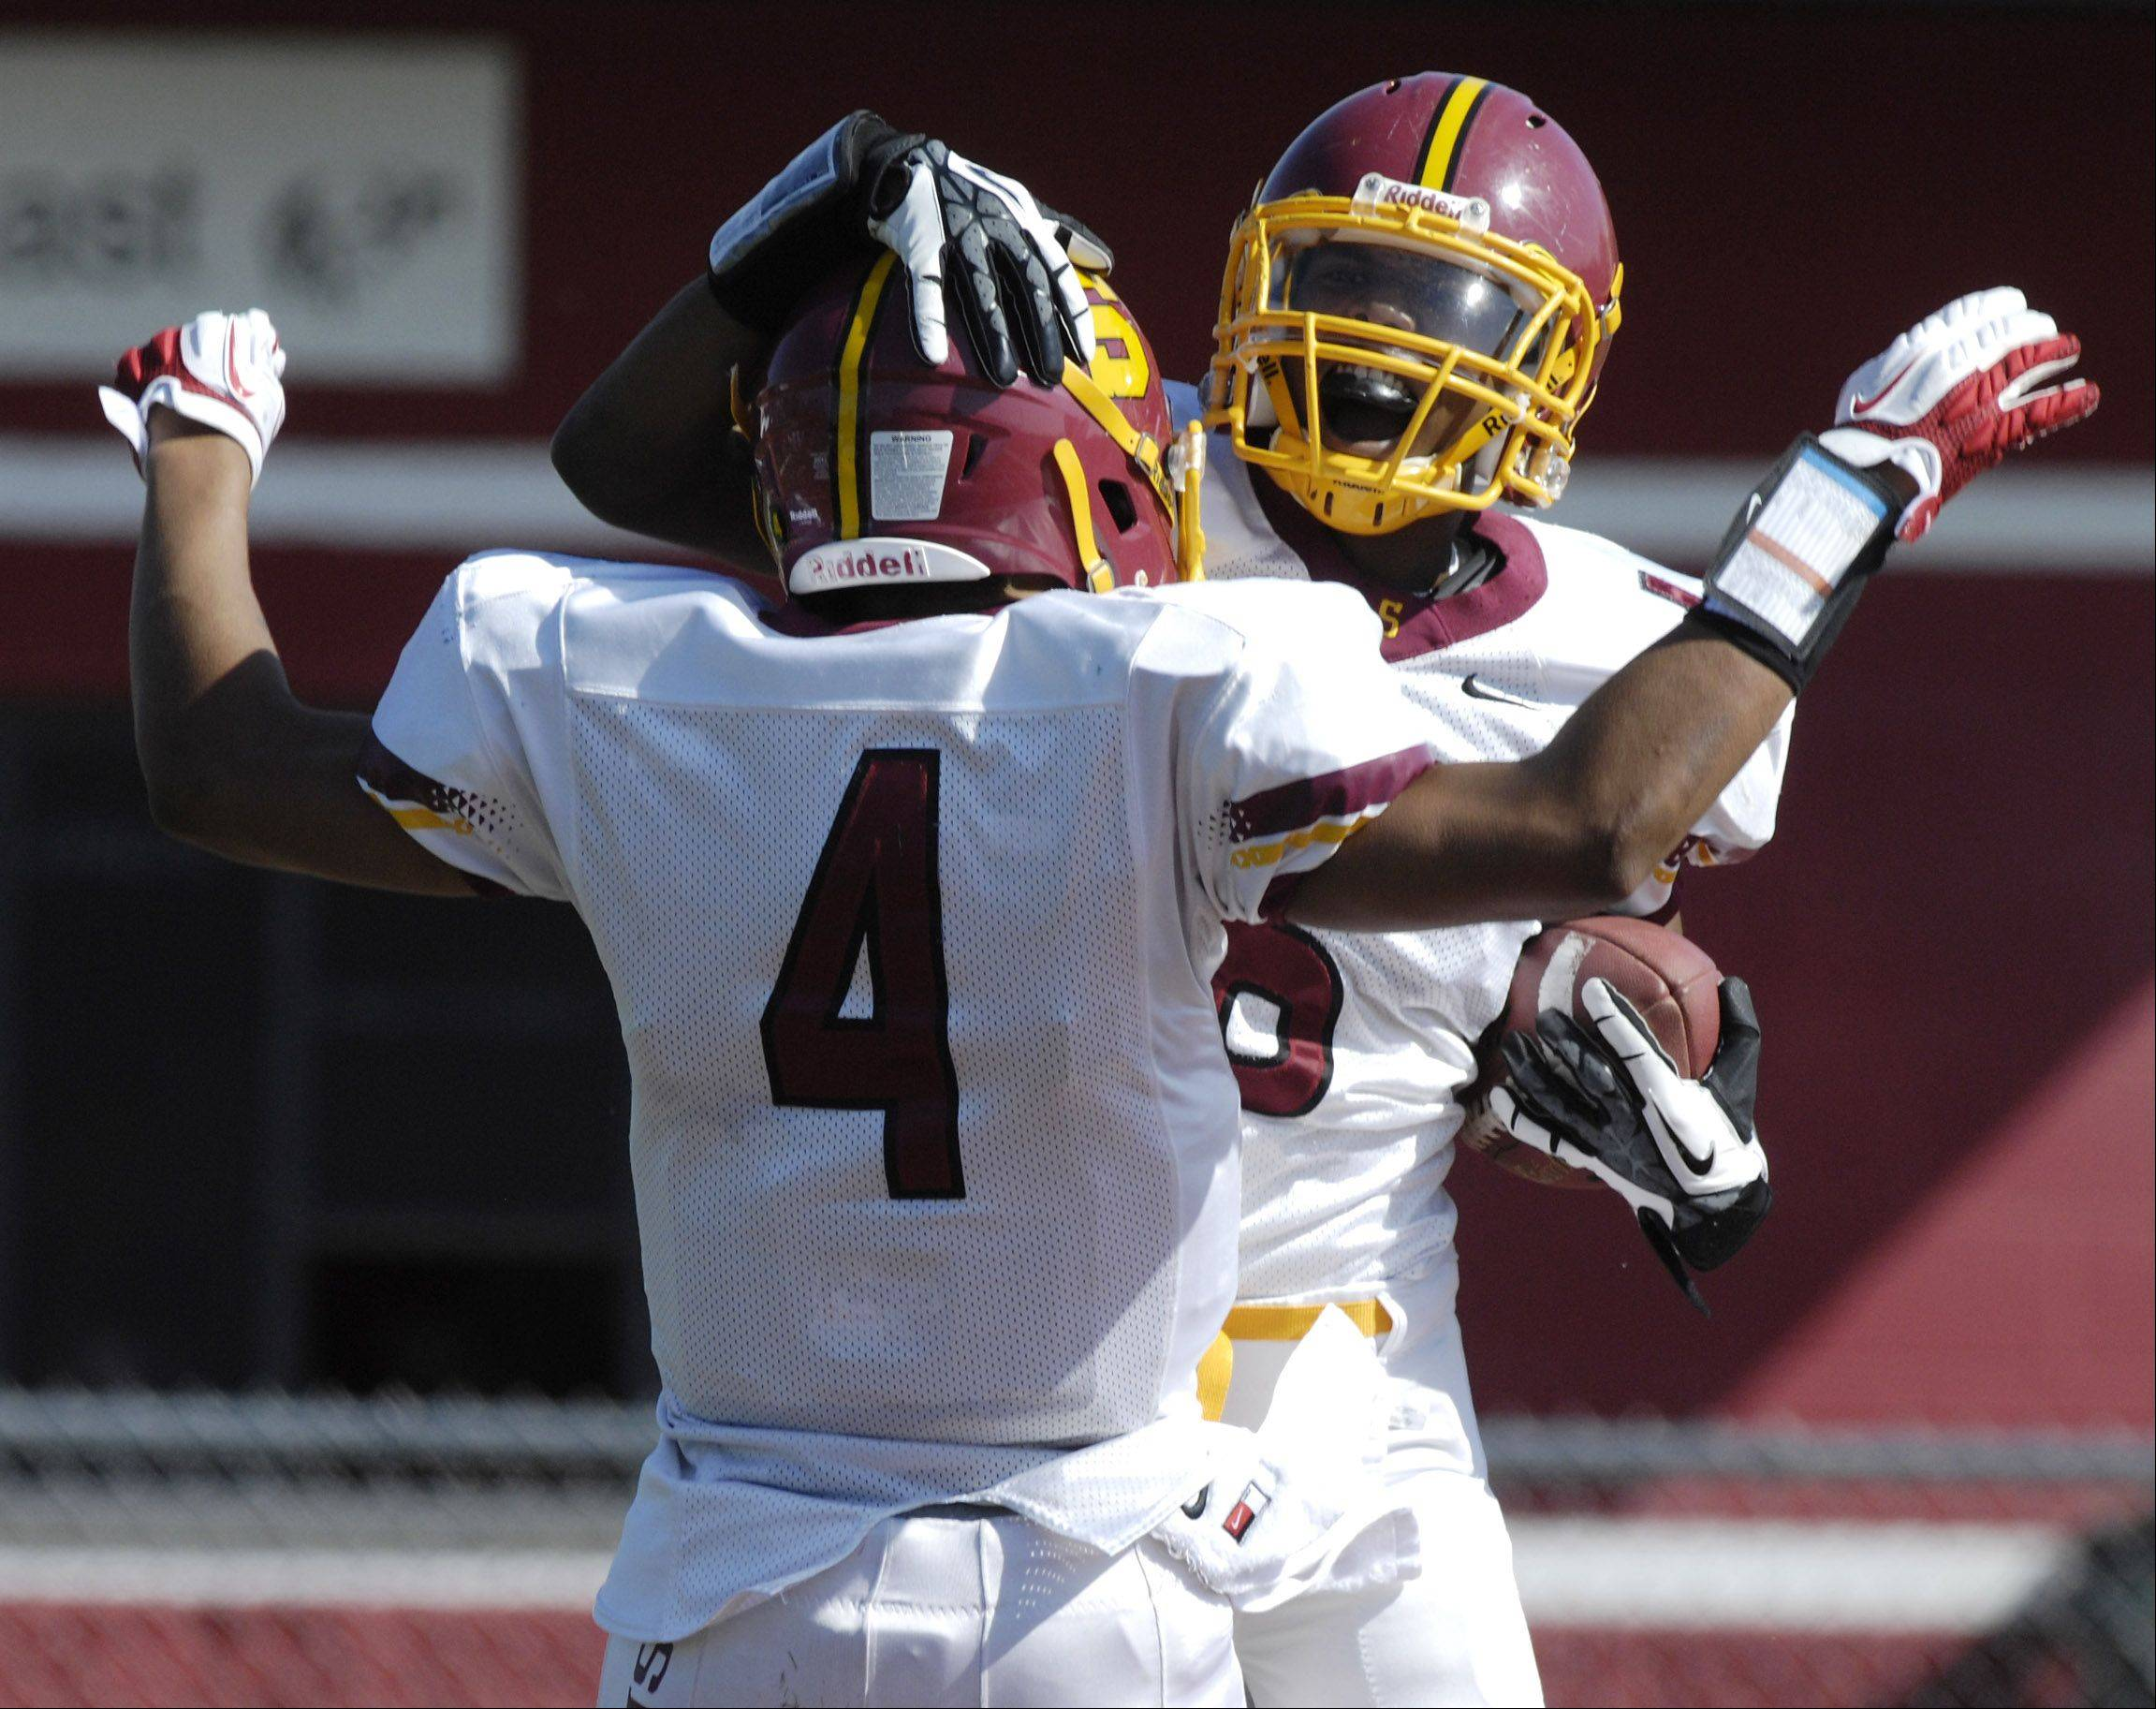 JOE LEWNARD/jlewnard@dailyherald.comSchaumburg's Juwaan Richard, right, celebrates his first-quarter touchdown with teammate Akema Collins during Saturday's game against Barrington.